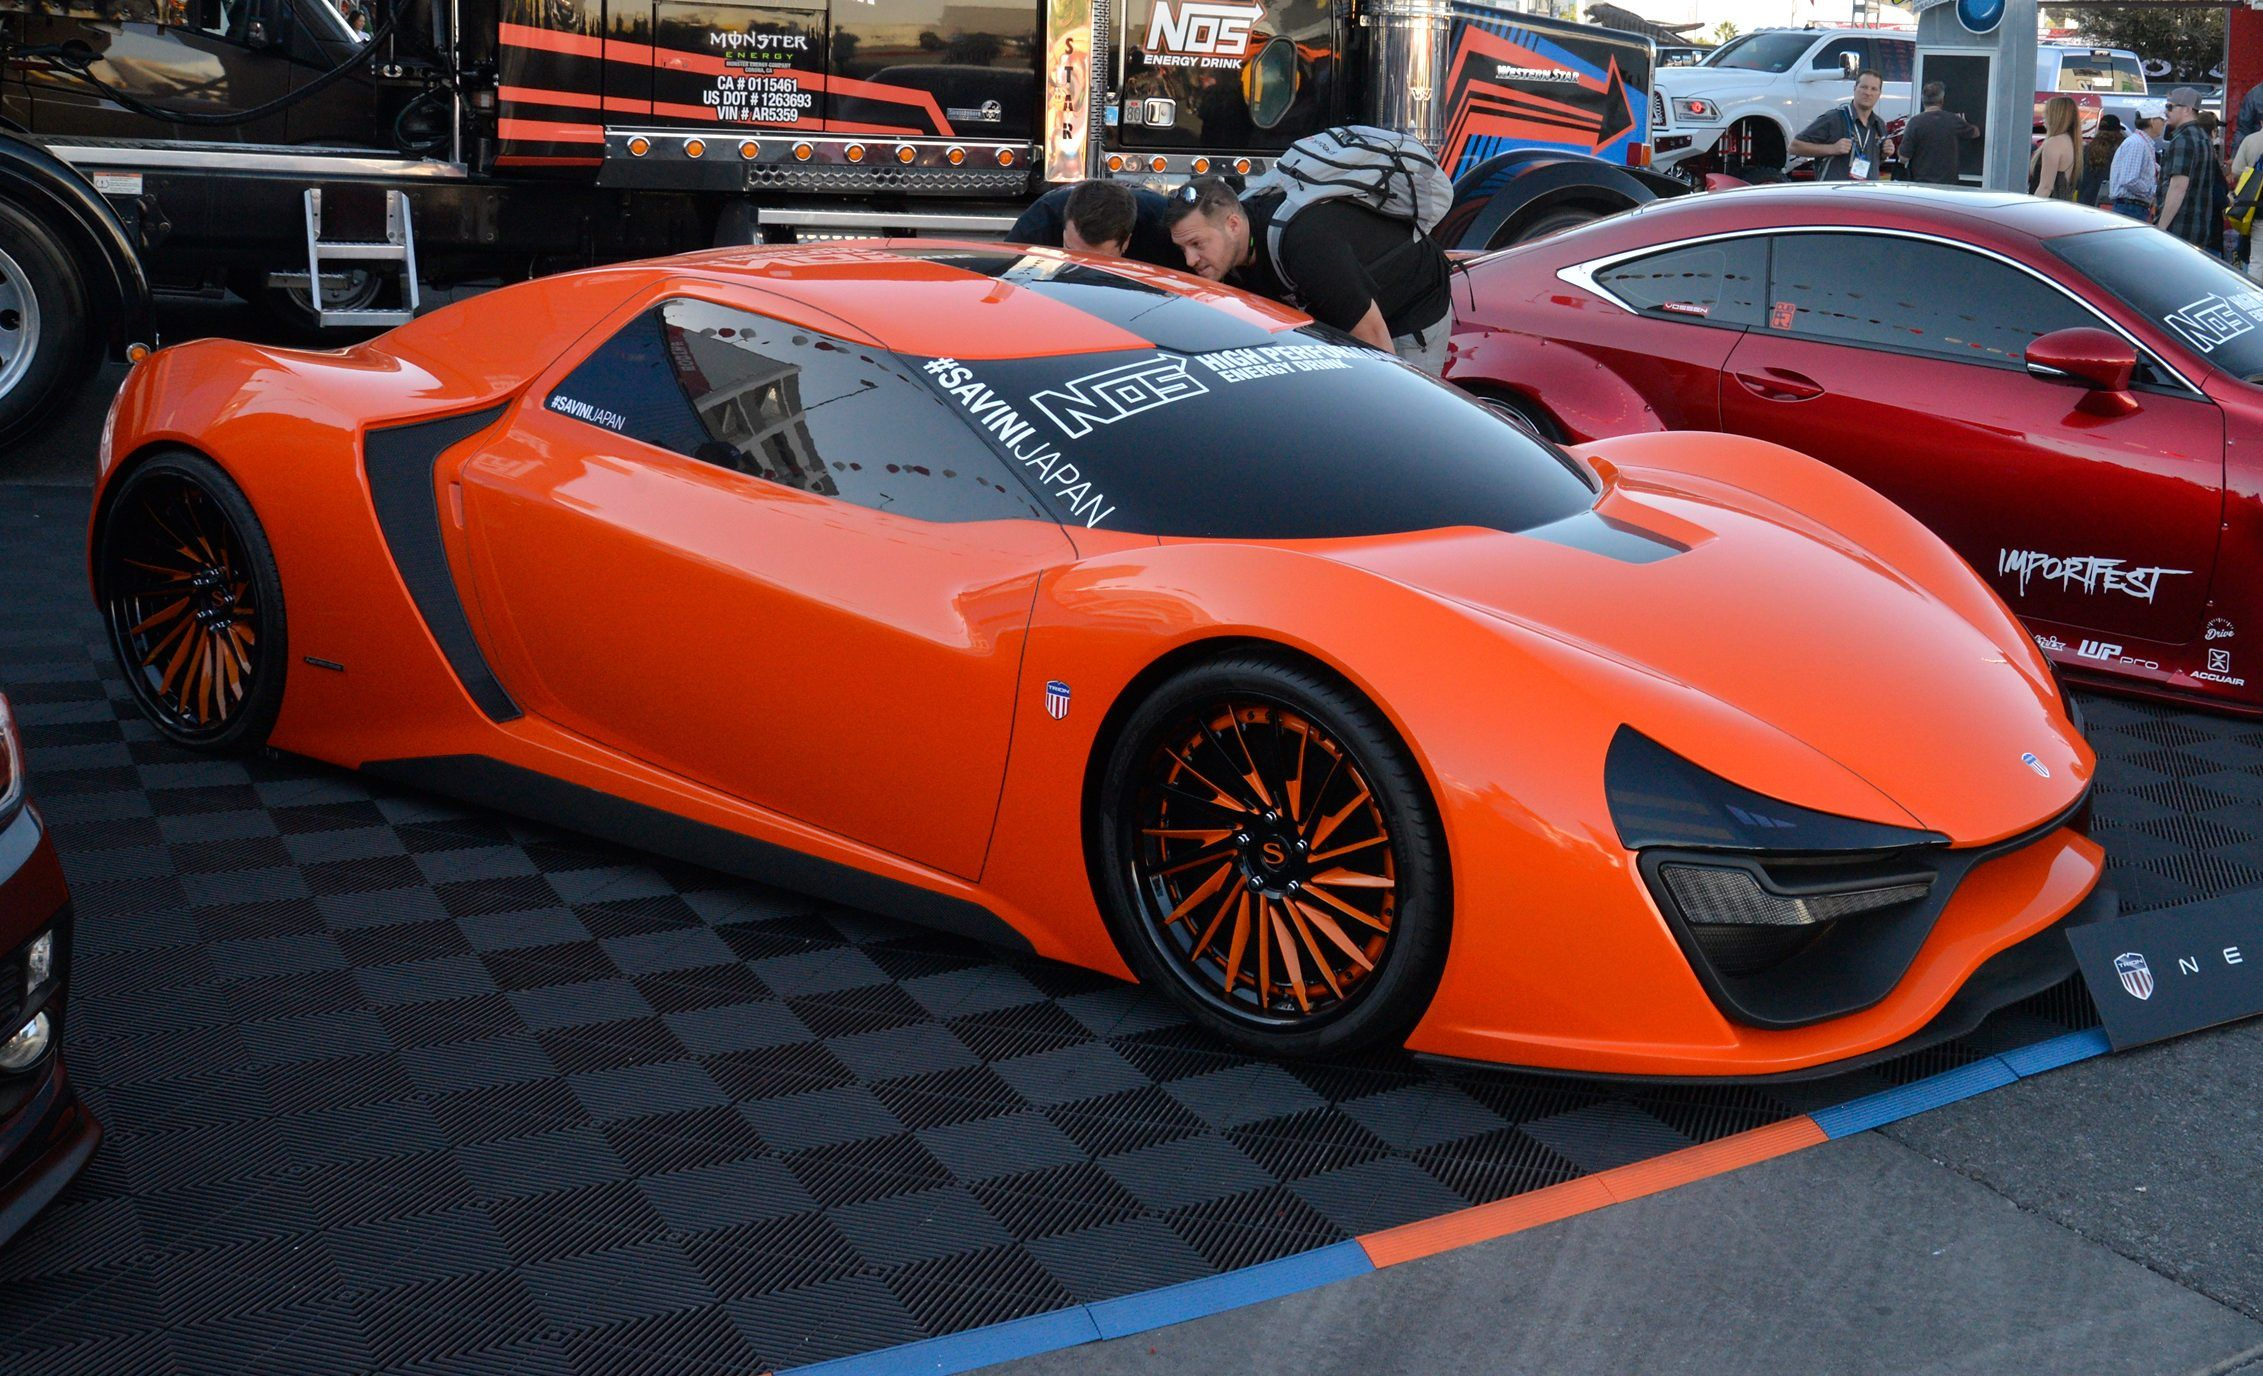 2017 Trion Nemesis Rr 4wd 2000 Hp Twin Turbo V8 Supercars Trion Super Cars Twin Turbo